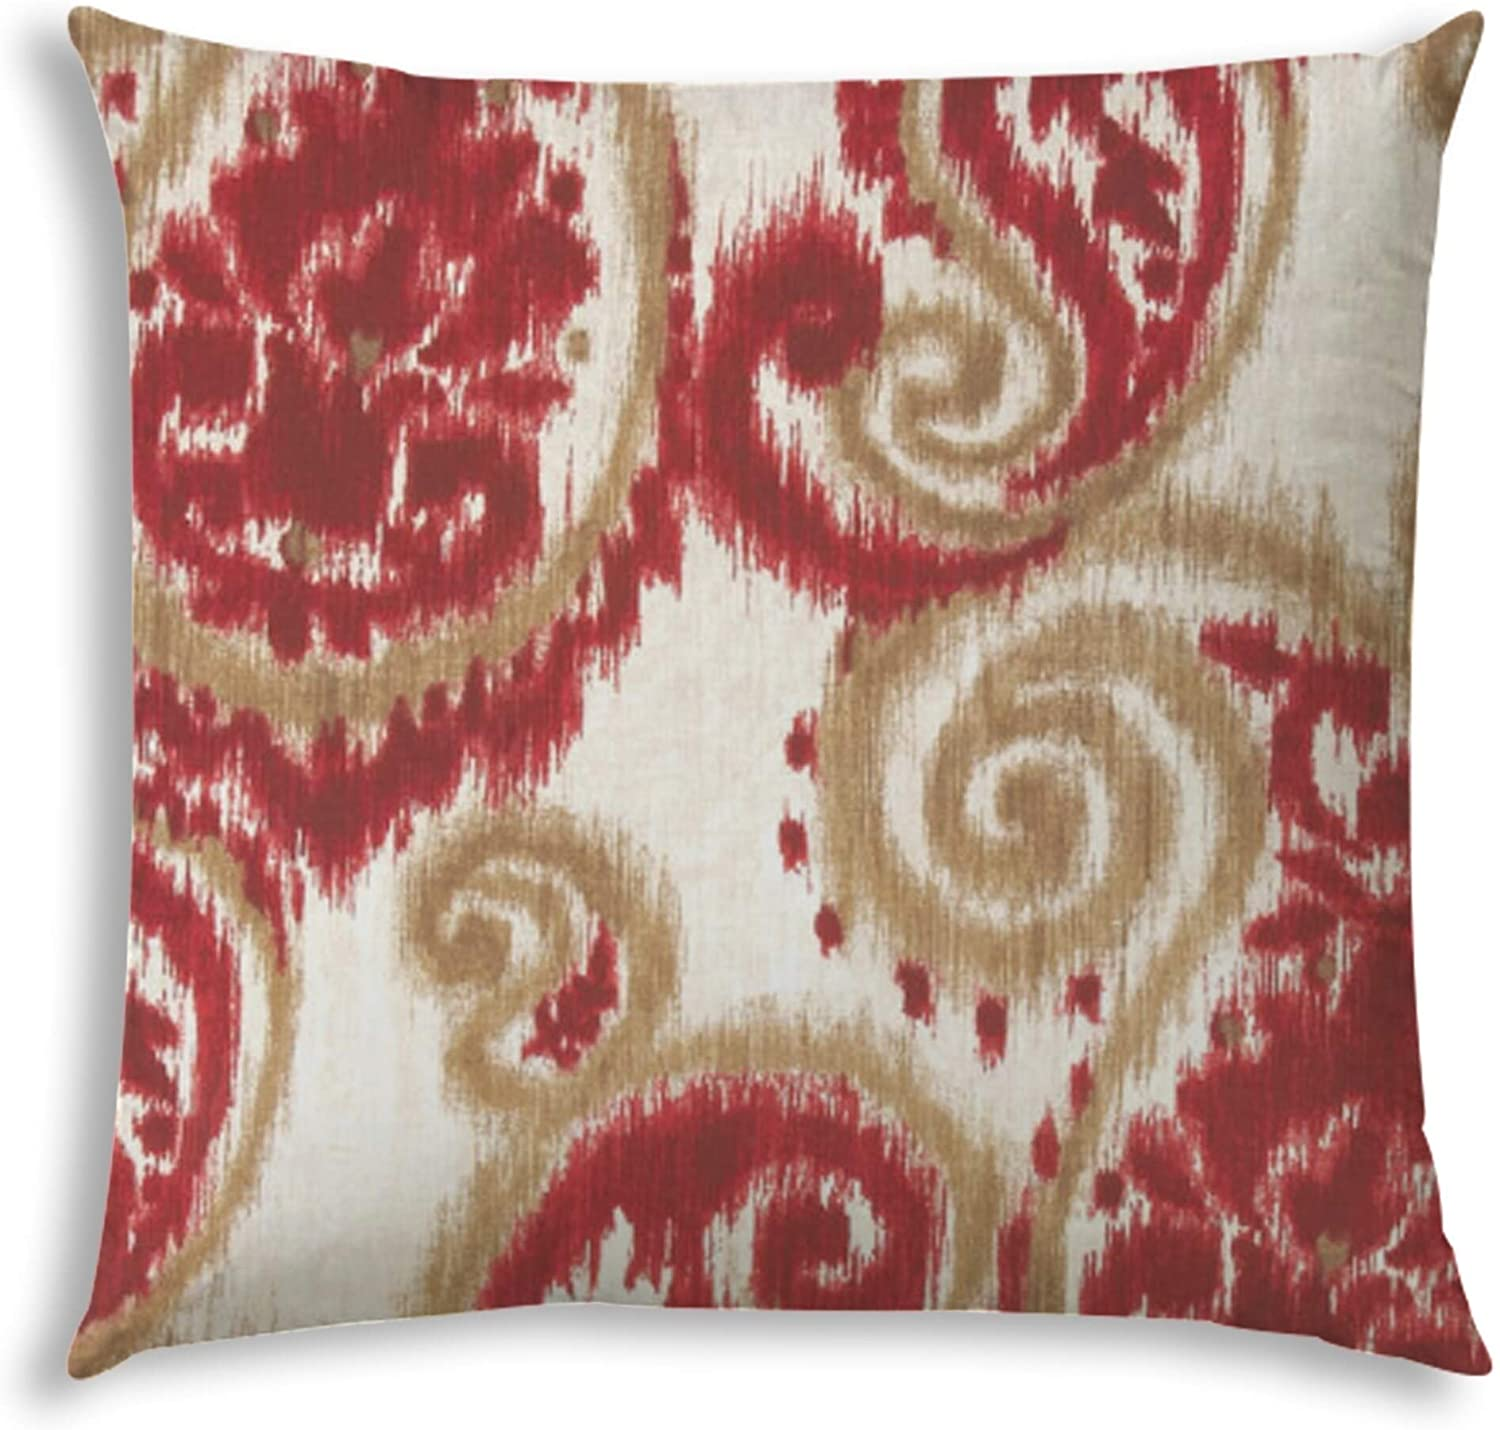 Swirl Red Indoor/Outdoor Pillow Sewn Closure Color Graphic Modern Contemporary Polyester Water Resistant